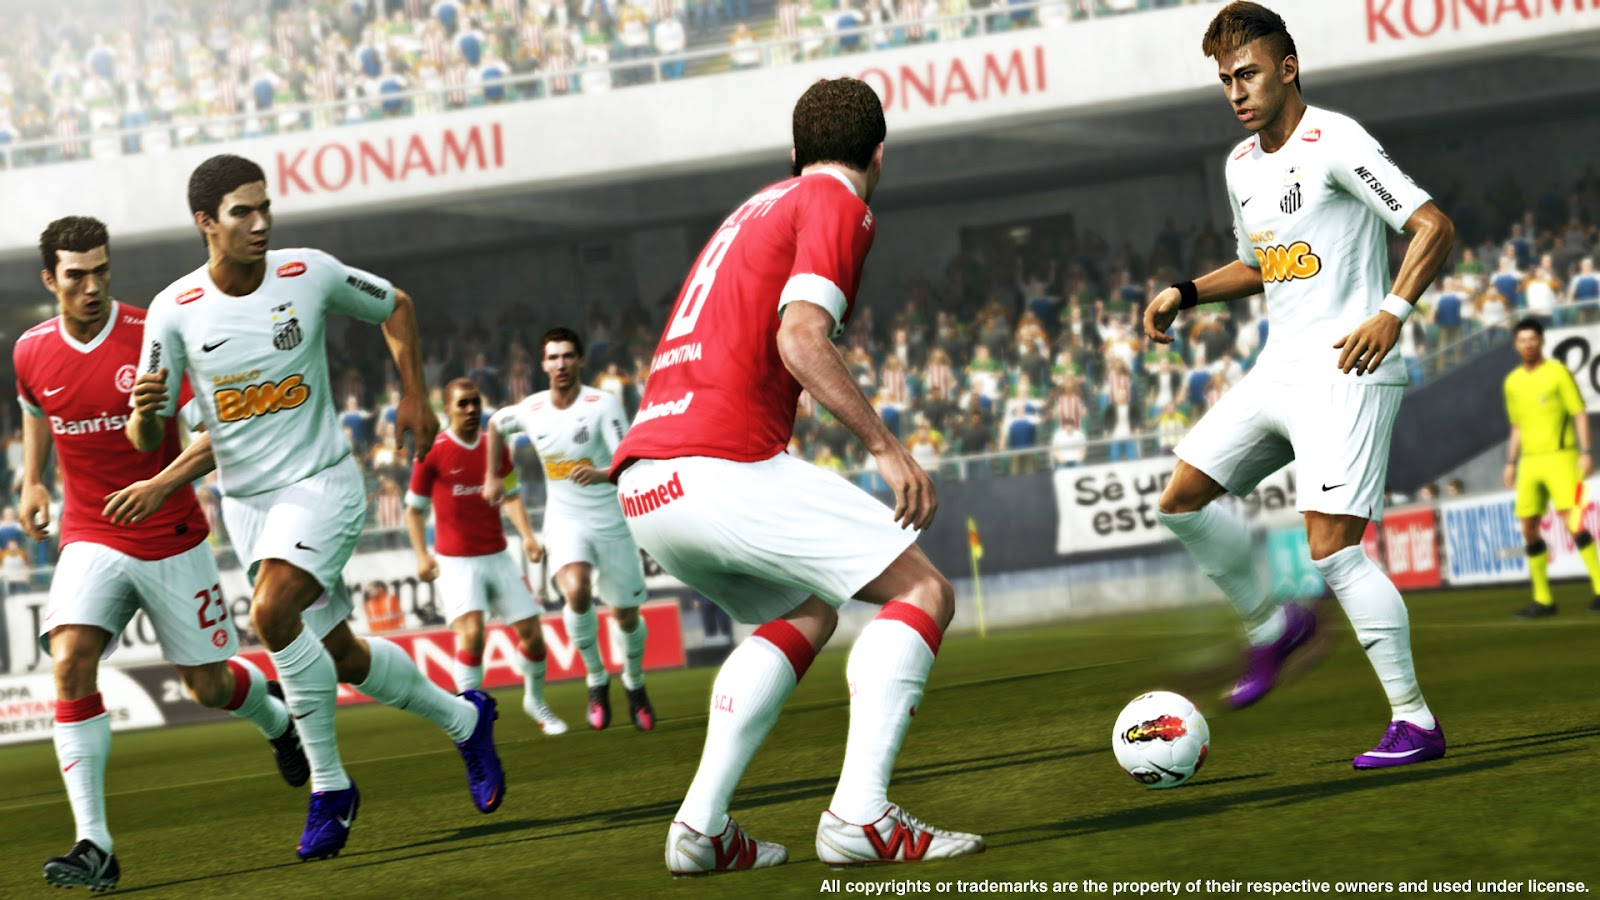 New PES 2013 Screenshots Released